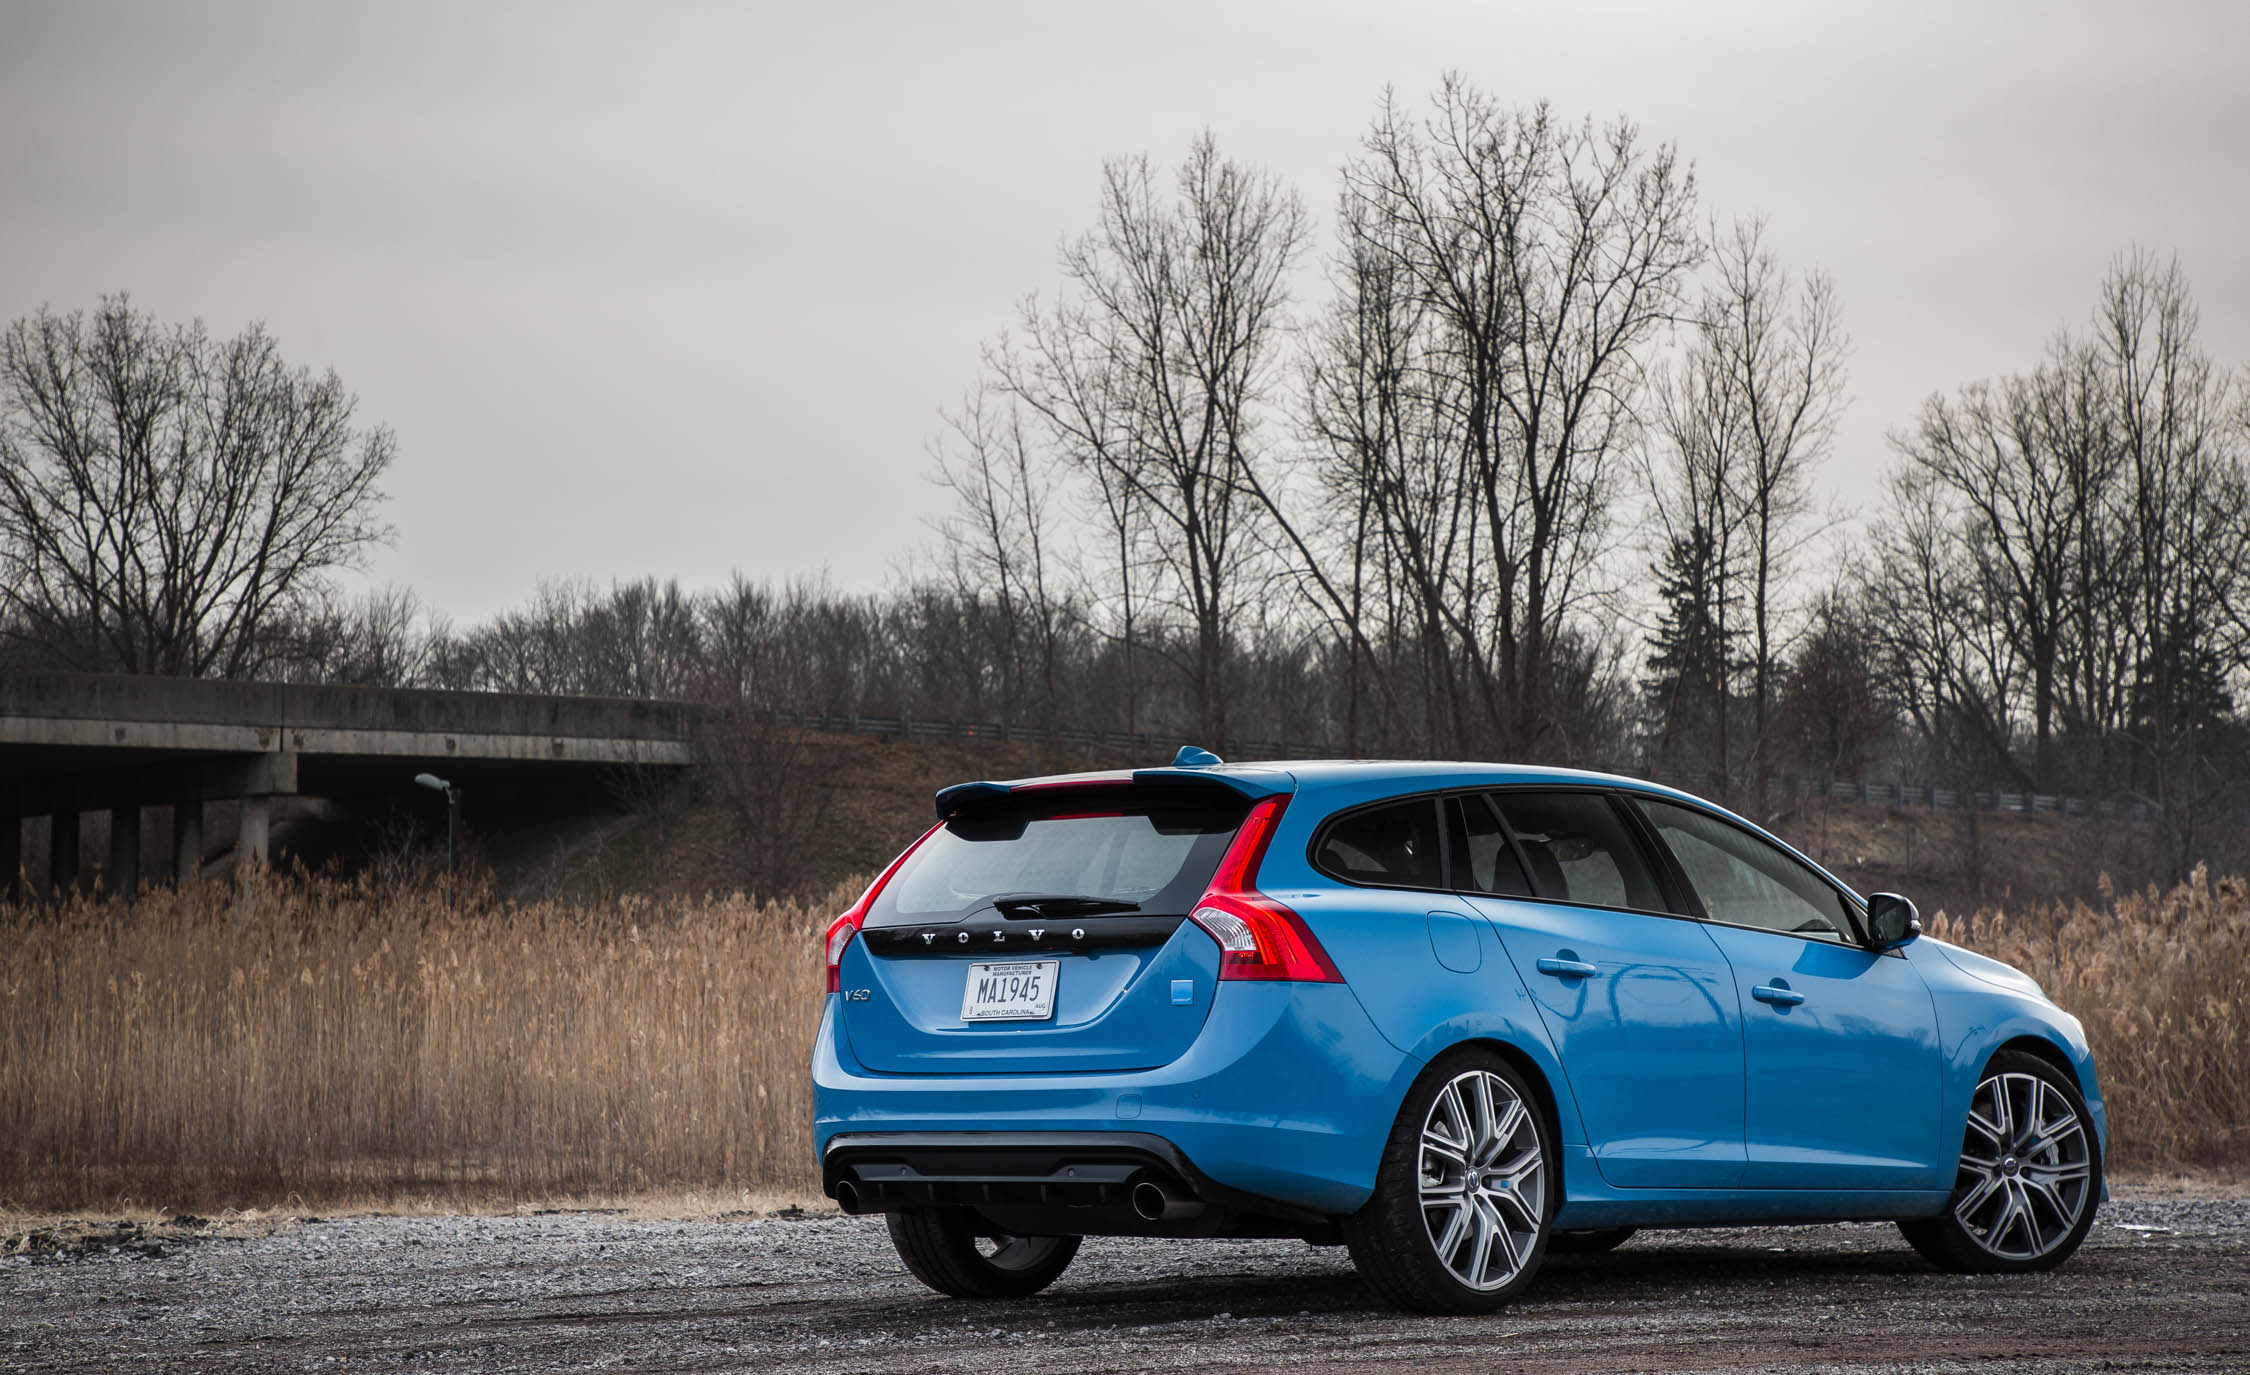 2017 Volvo V60 Polestar Exterior Rear And Side (Photo 5 of 53)